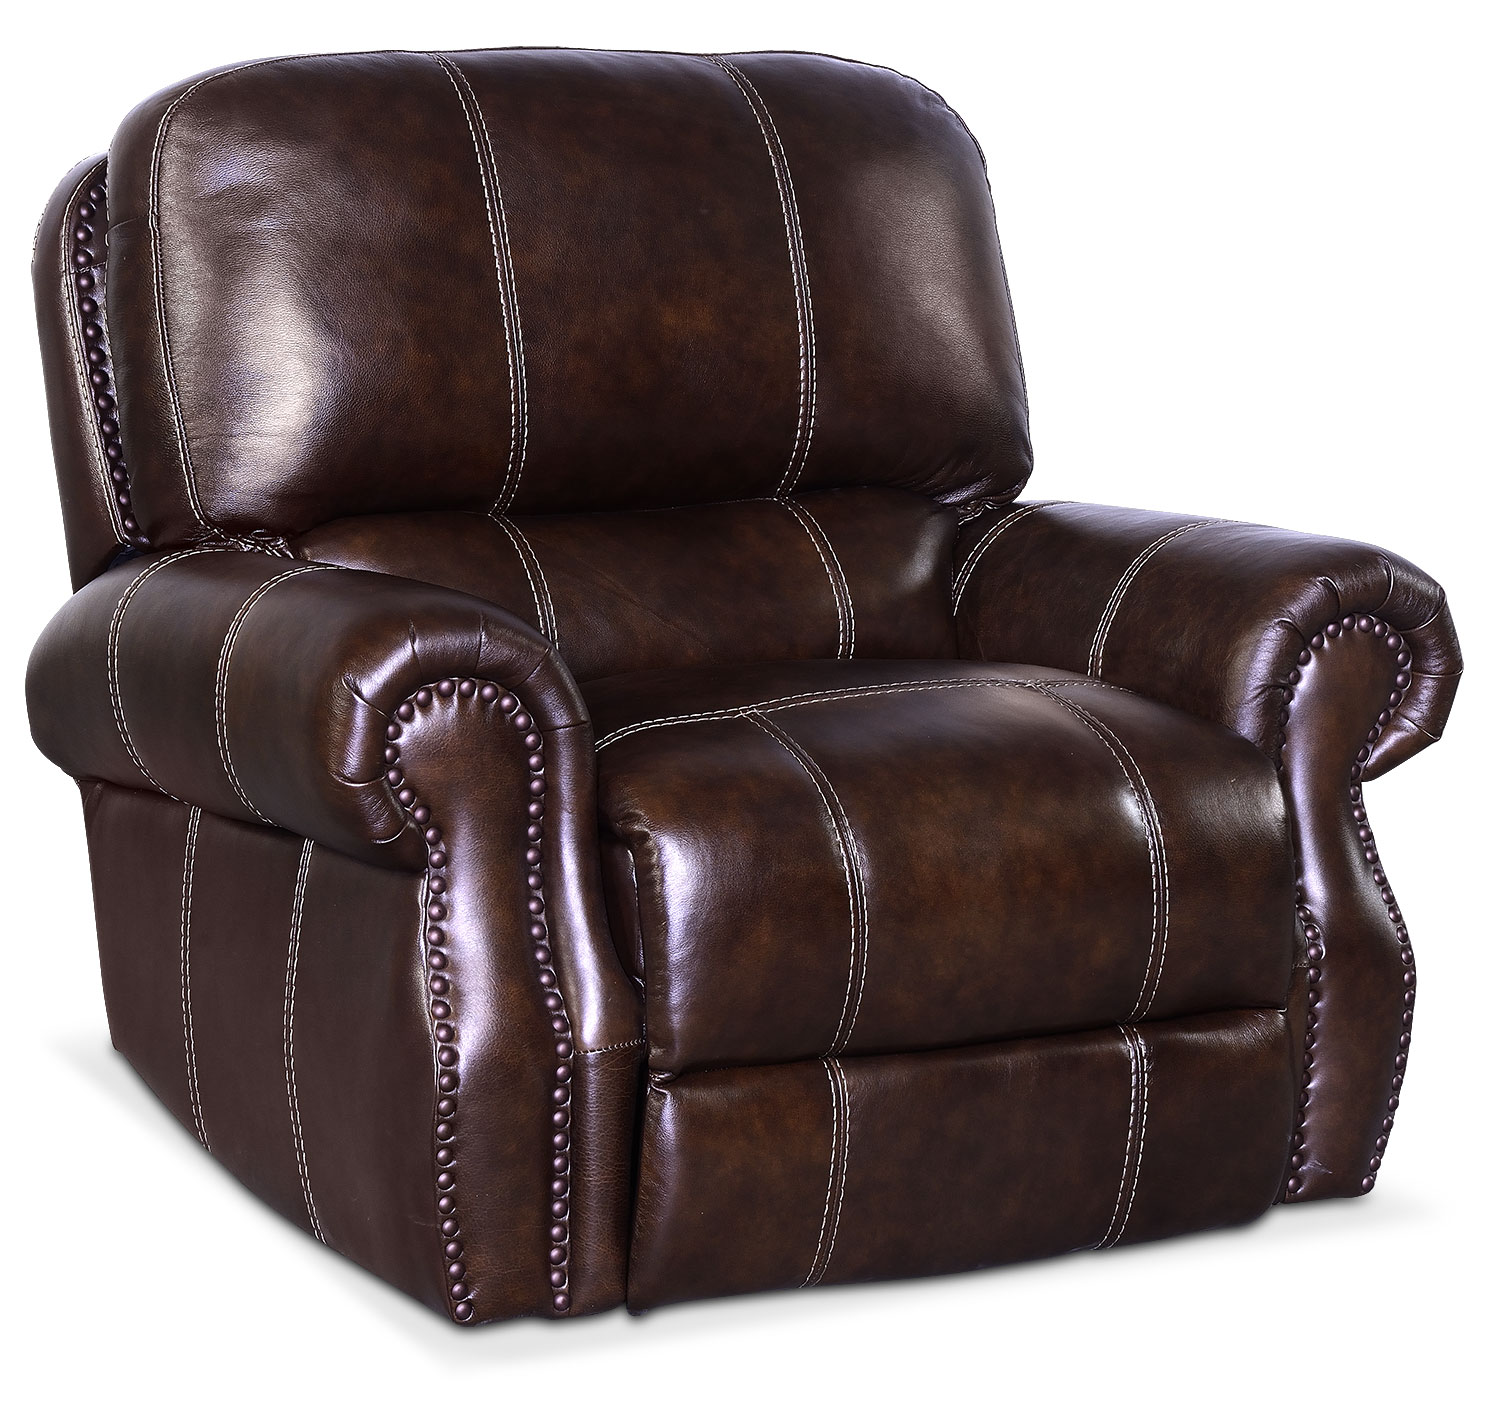 Living Room Furniture - Dartmouth Power Recliner - Chocolate